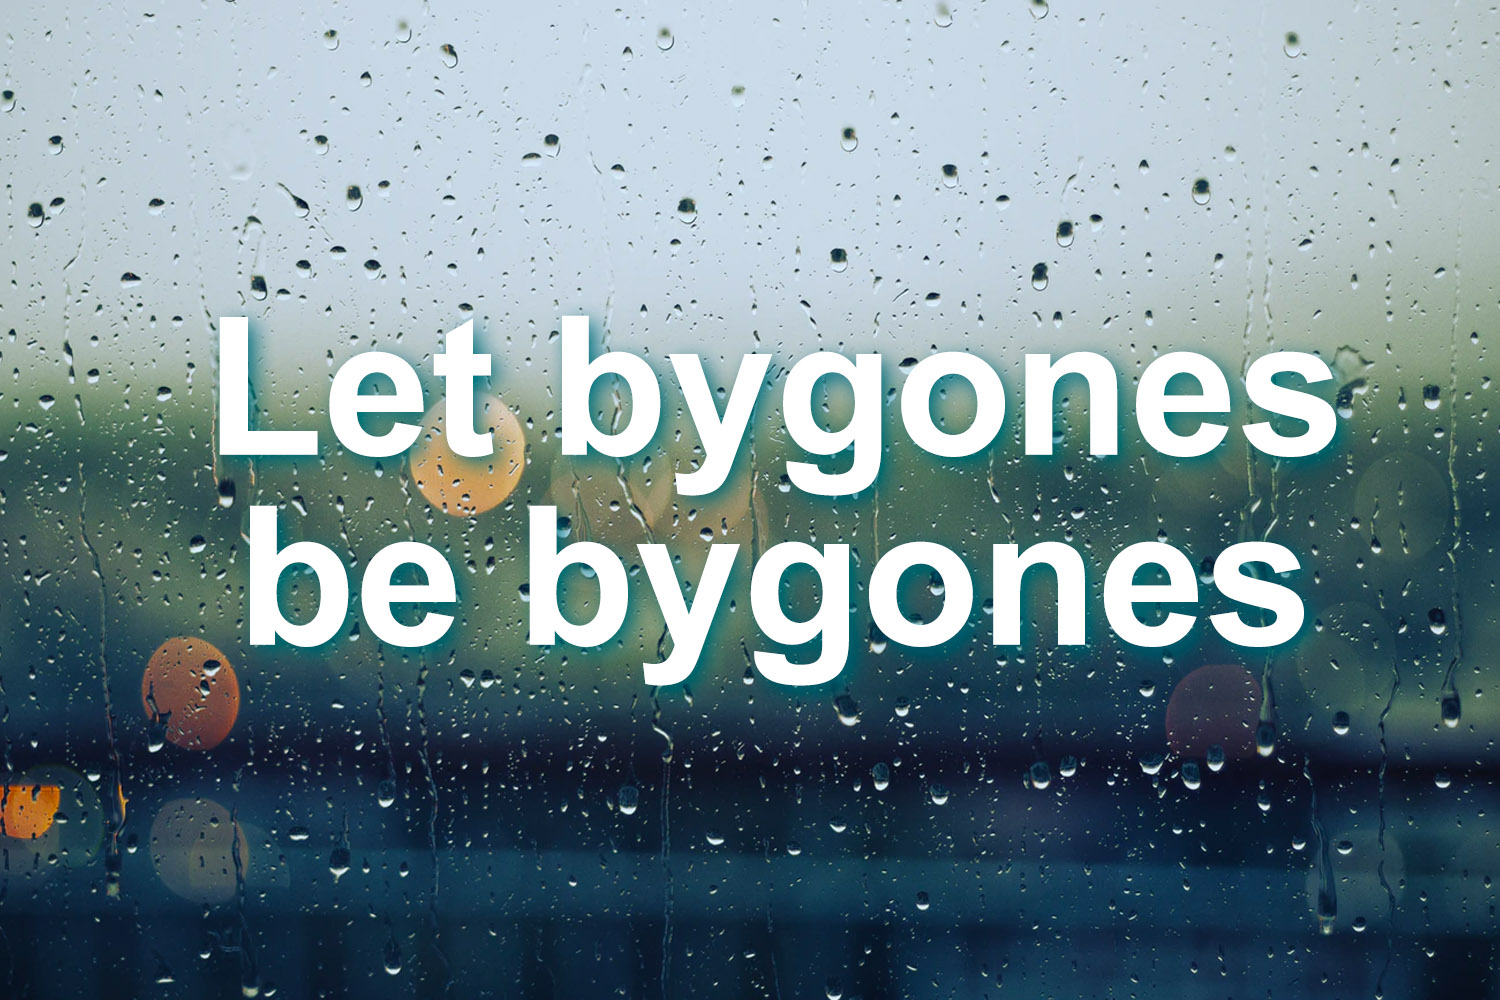 圖片-Let bygones be bygones